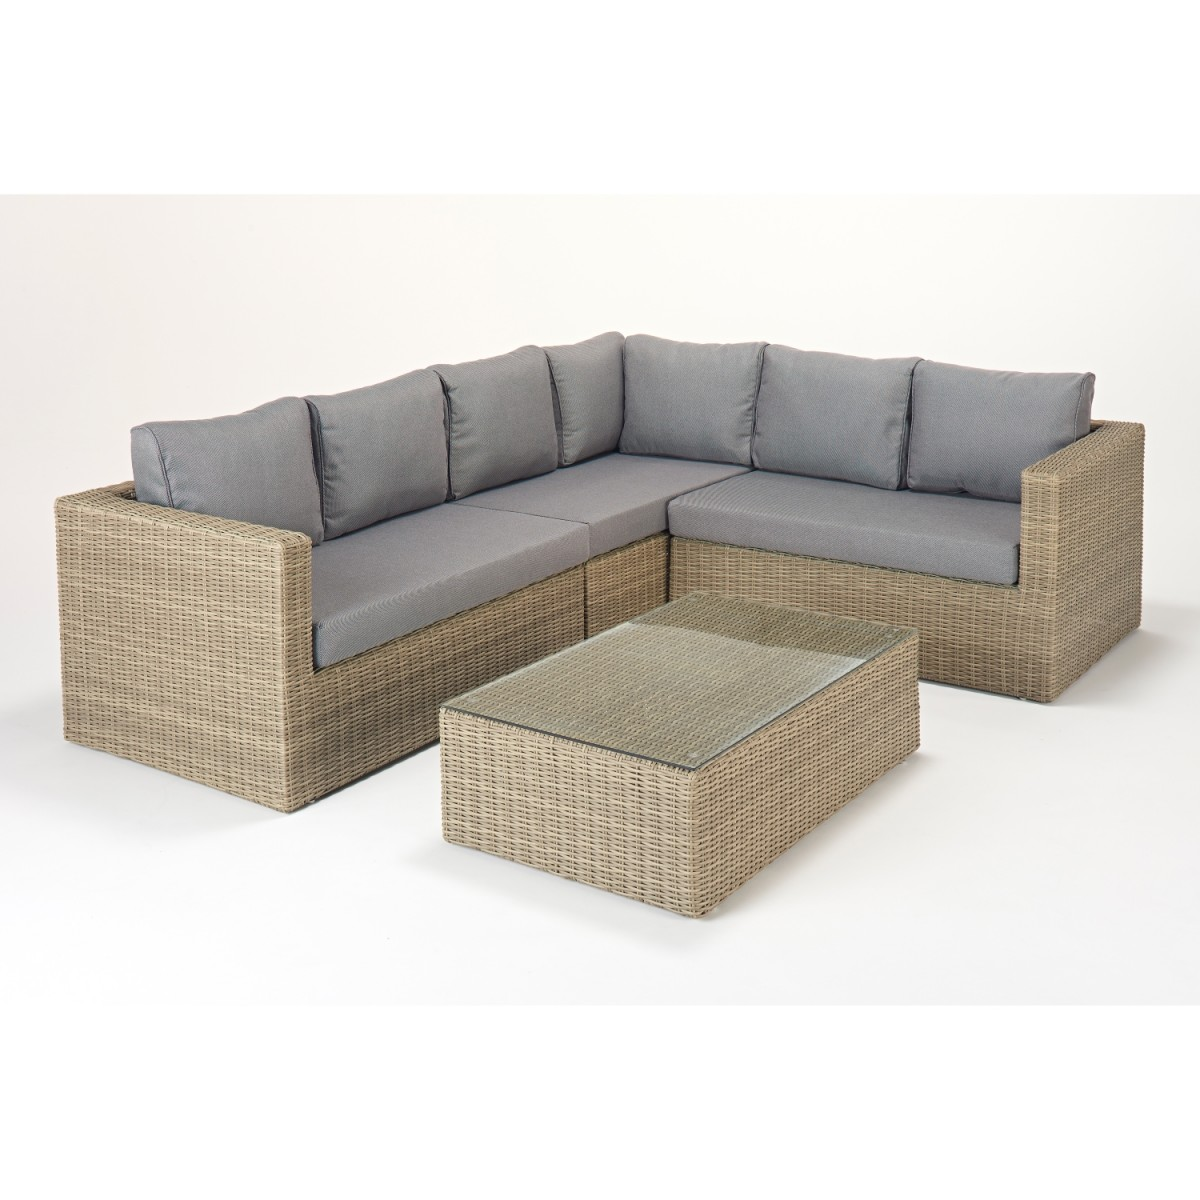 Rattan Corner Sofa Set Uk Rattan Sets Rural Large Corner Sofa Set Wgf 810 Right Hand